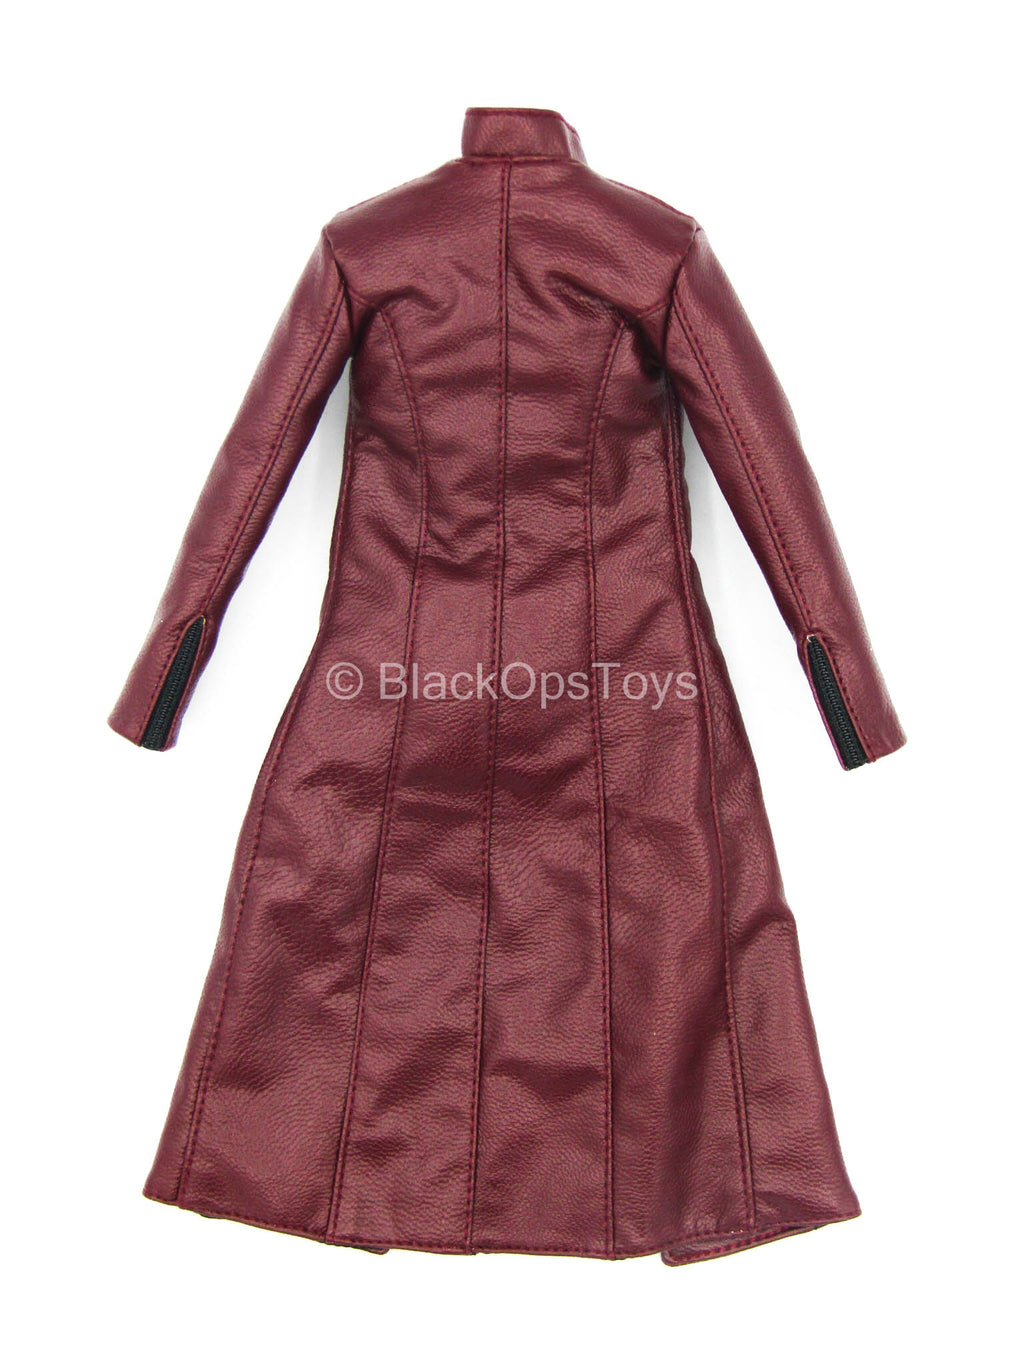 Phoenix Lady - Red Leather Like Trench Coat